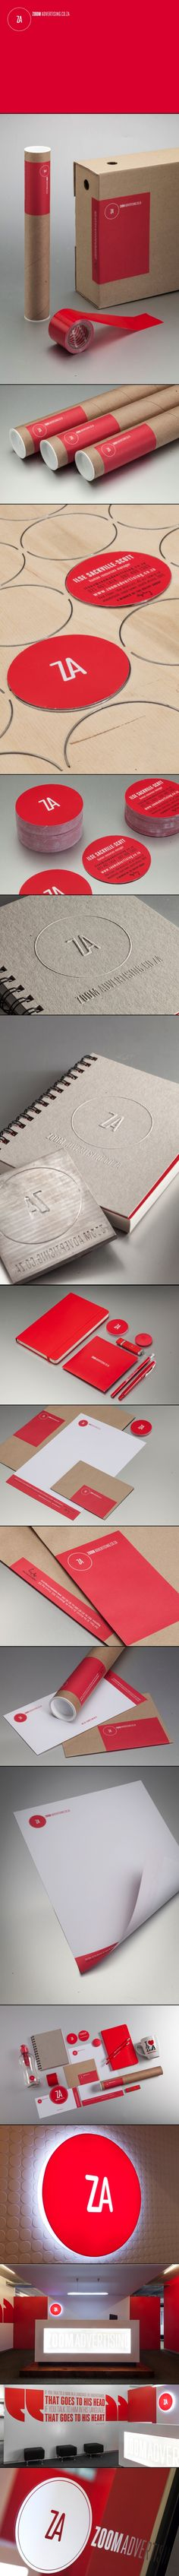 Zoom Corporate // An identity system for Zoom Advertising agency, the logo is very minimalist, simple, clear and yet very strong visually and the color red is very appropriate here because it is a strong color that symbolizes power, desire, energy and passion which are things advertising agencies long to deliver in their work. The logo looks very good on different mediums as well.